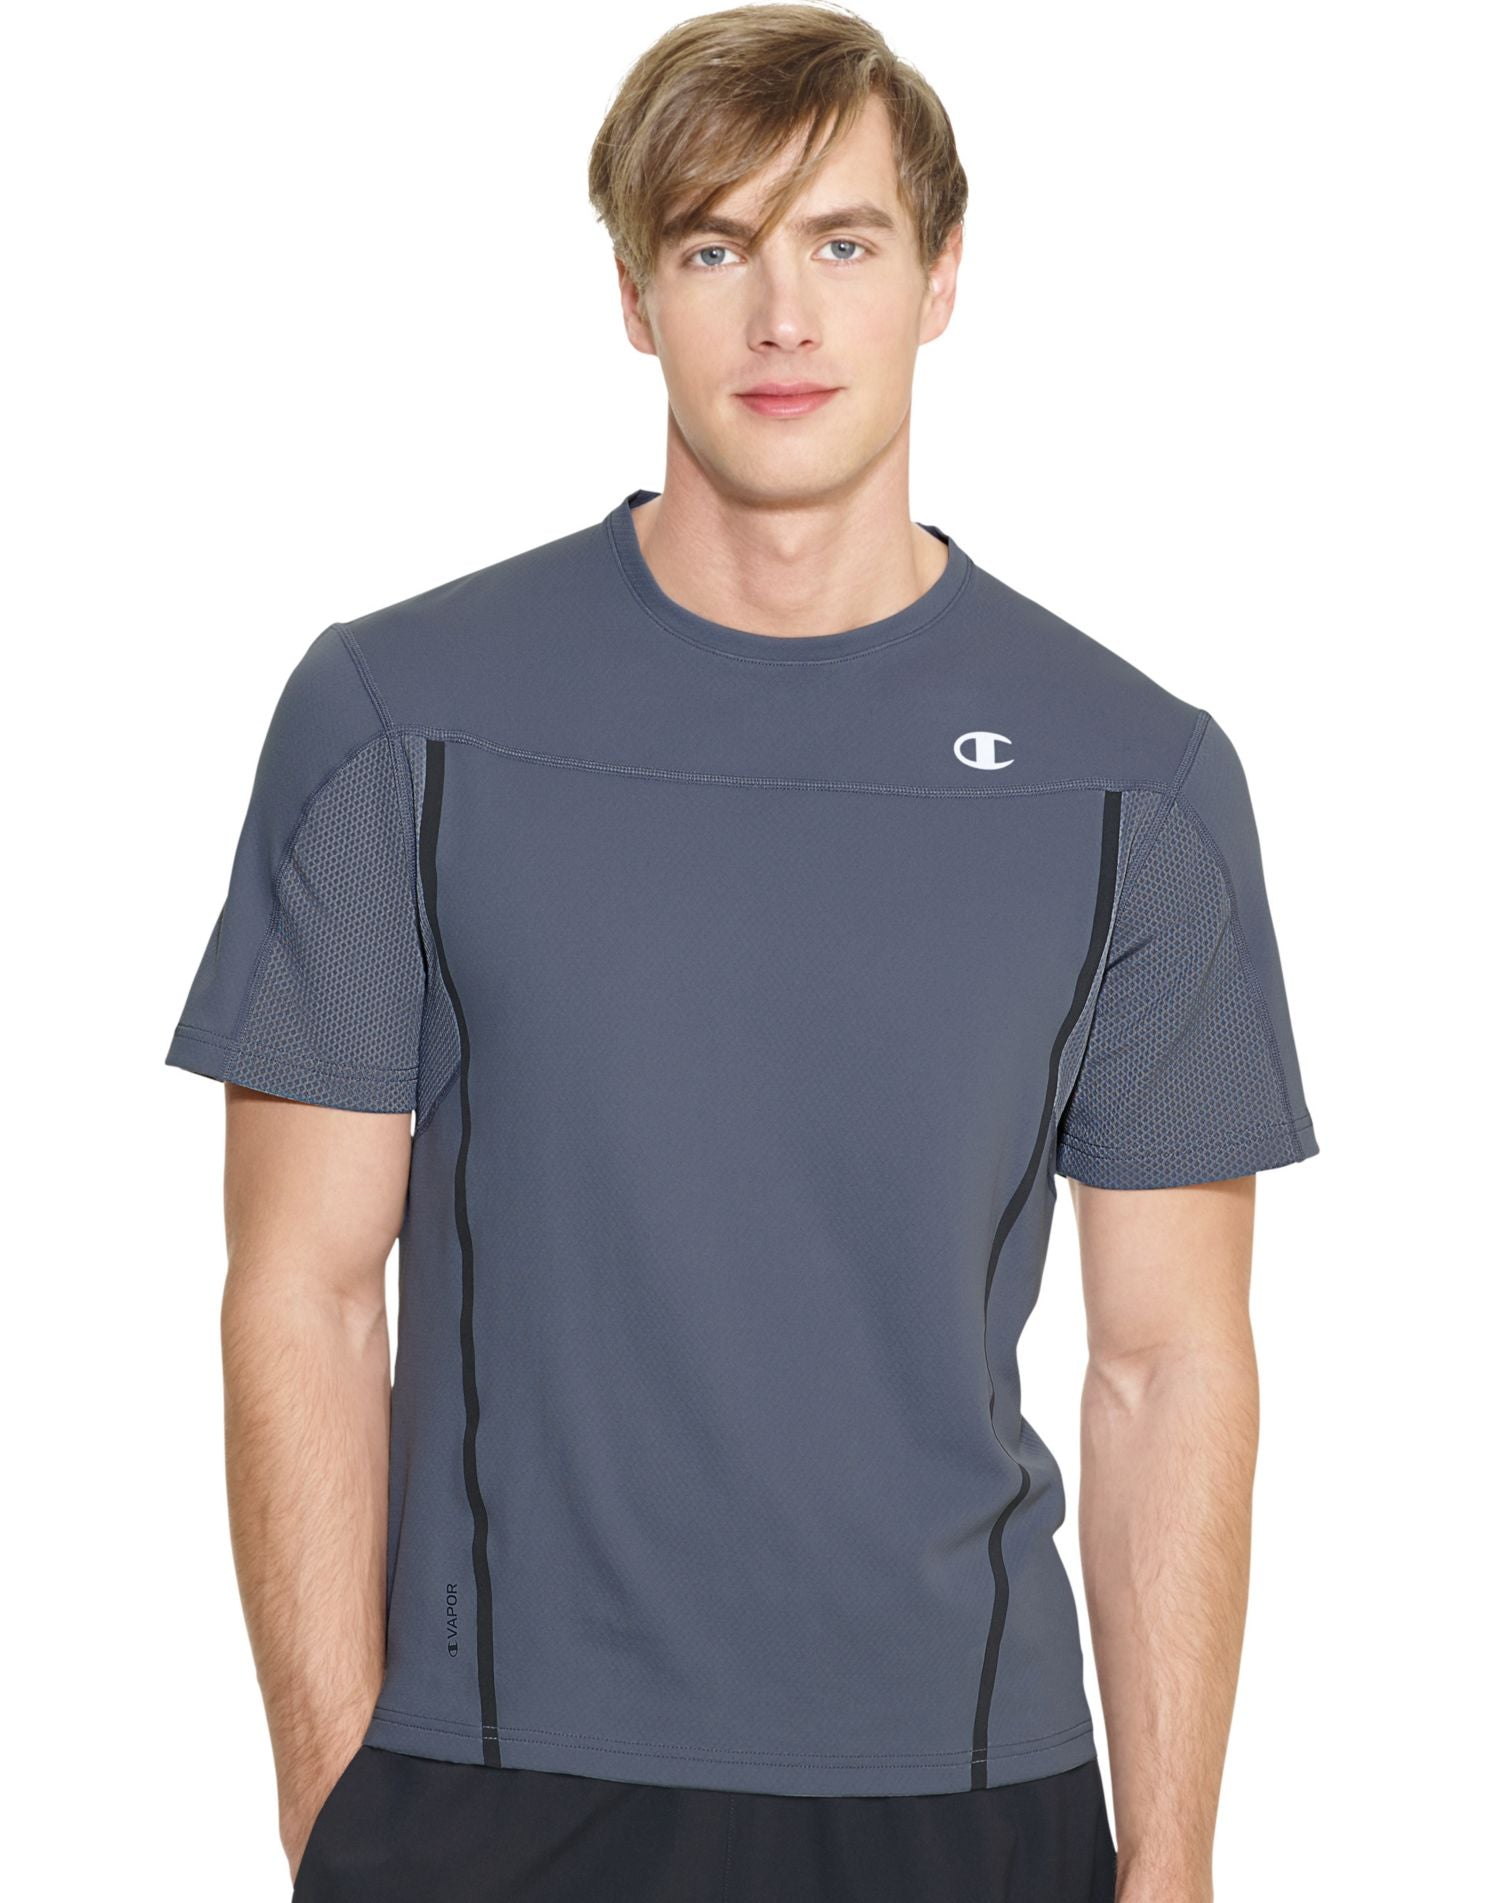 53c20bfb1 T7287 - Champion Men`s PerforMax Tee – NY Lingerie